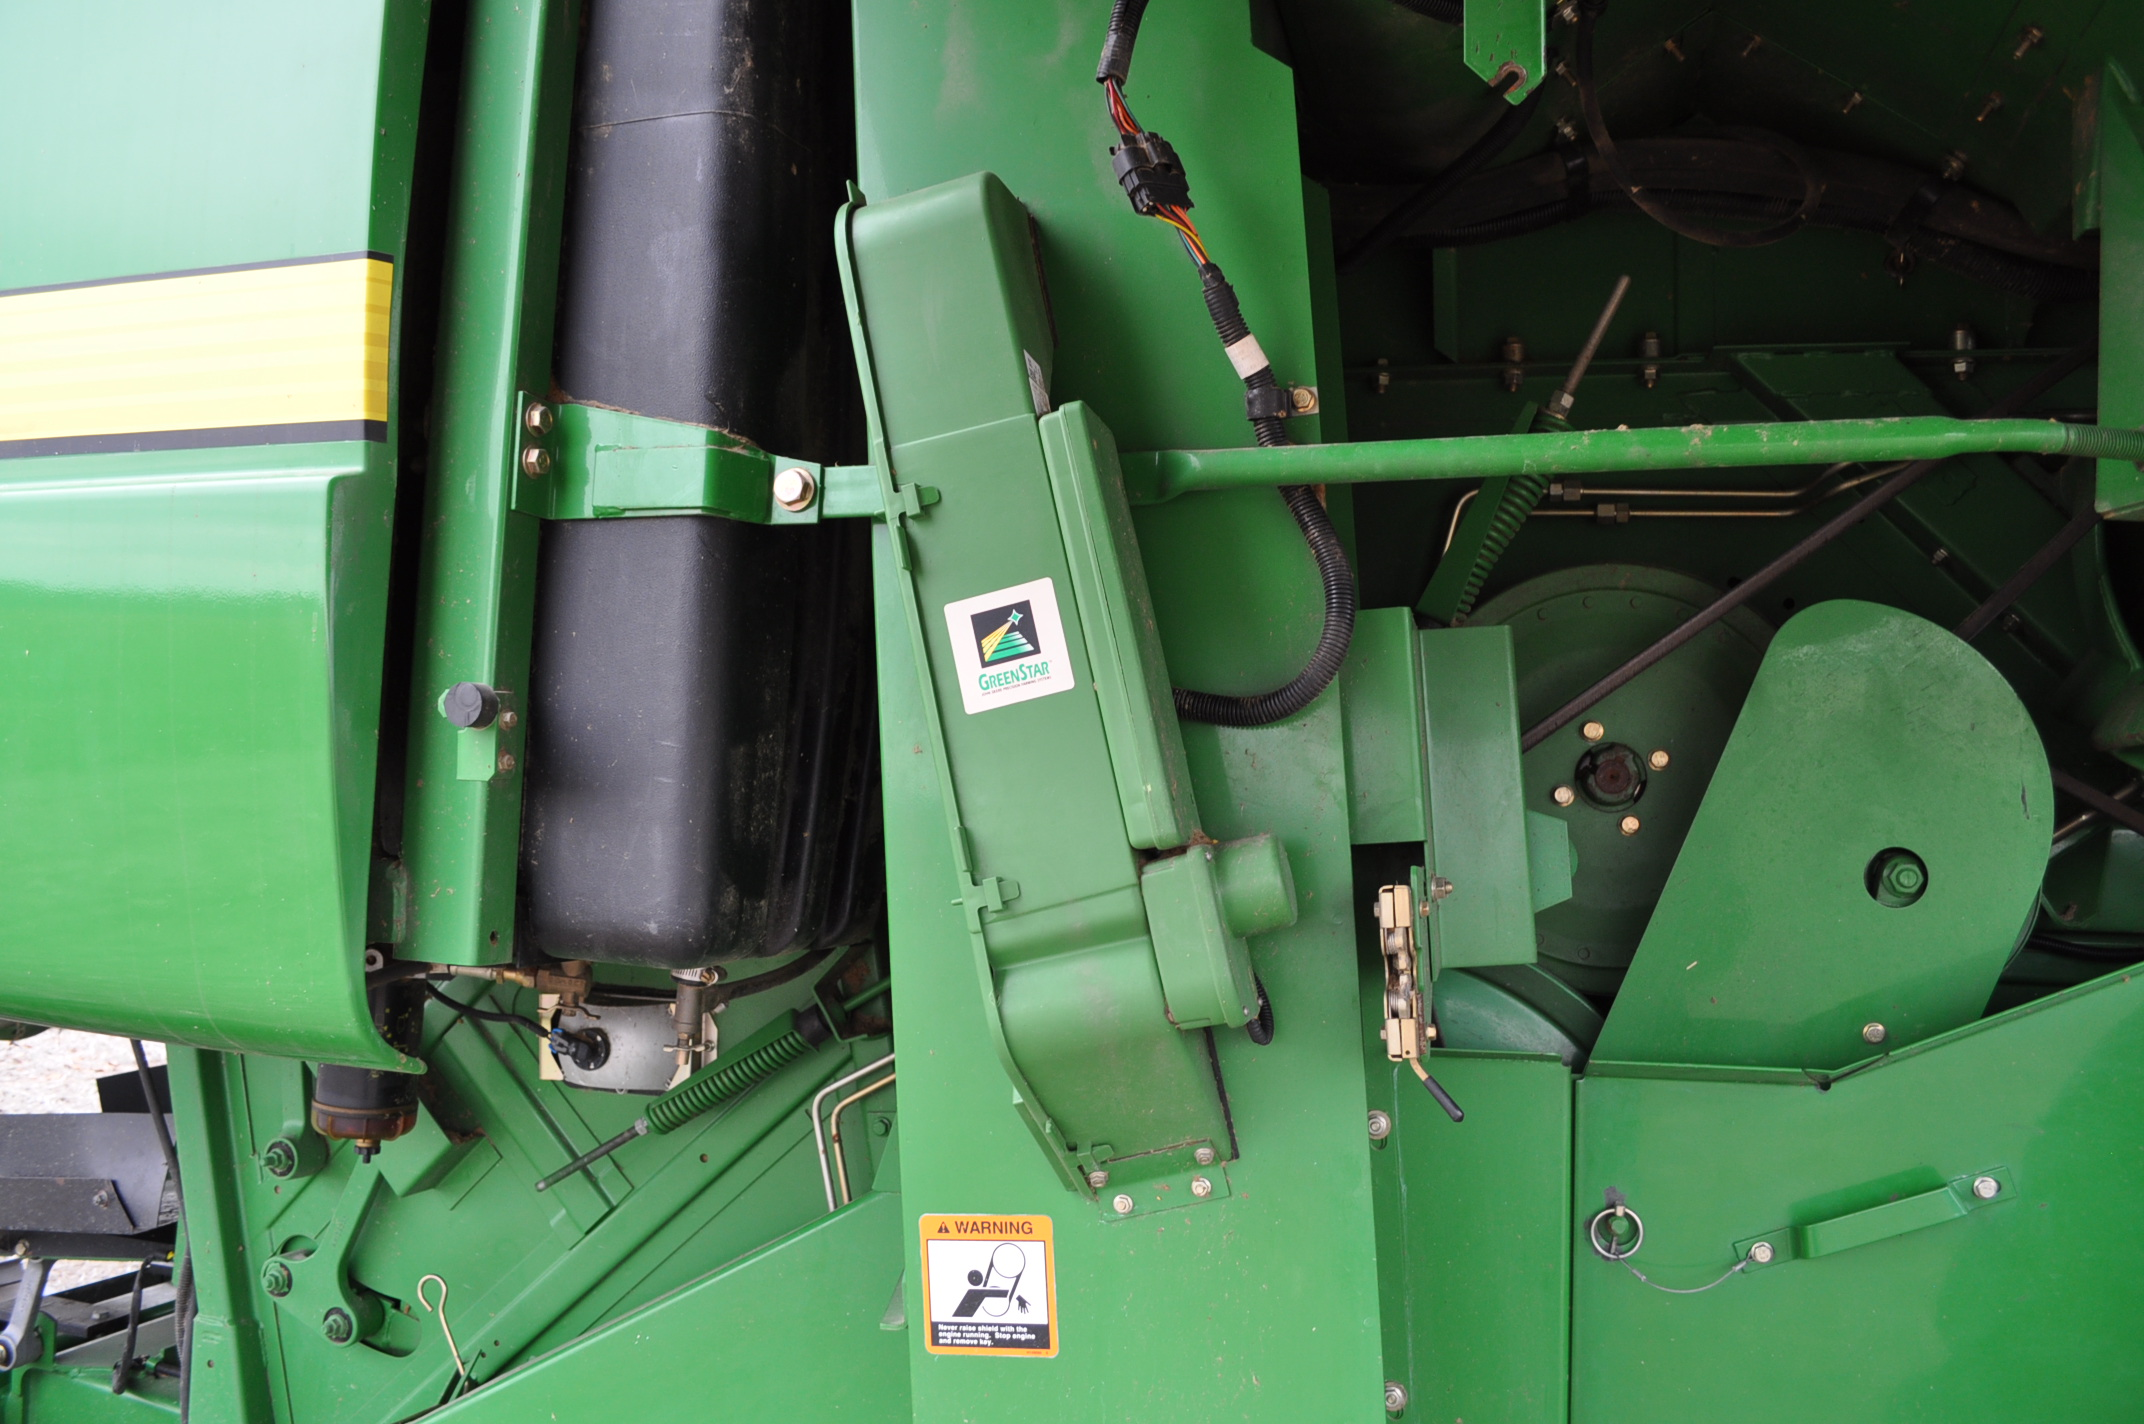 John Deere 9450 combine, 30.5-L32 drive, NEW 14.9-24 rear, chopper, chaff spreader, Mauer bin - Image 11 of 24